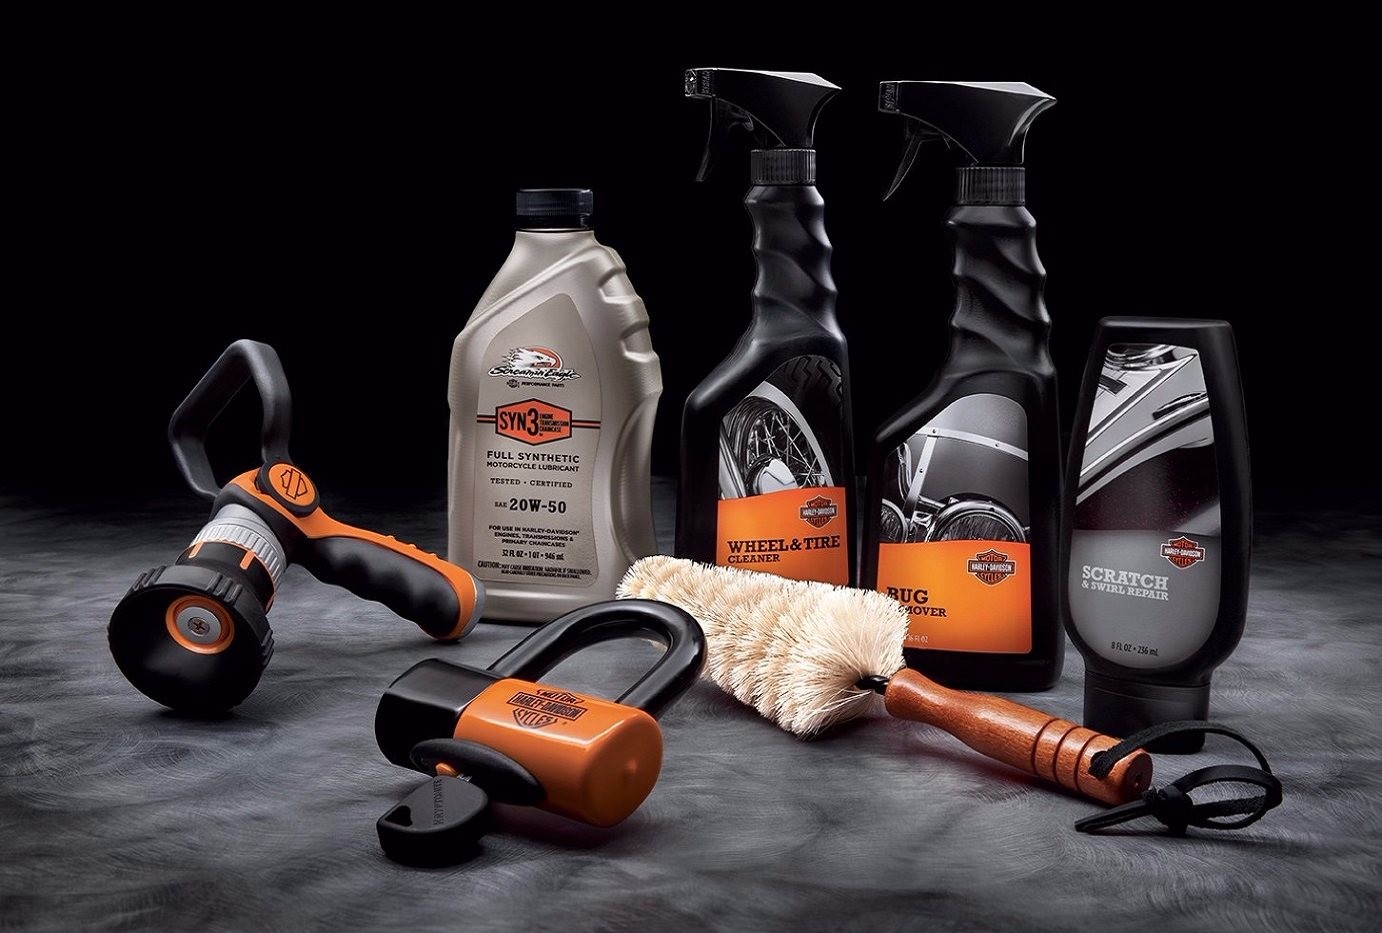 Sheldon's Harley Davidson leather cleaning kit